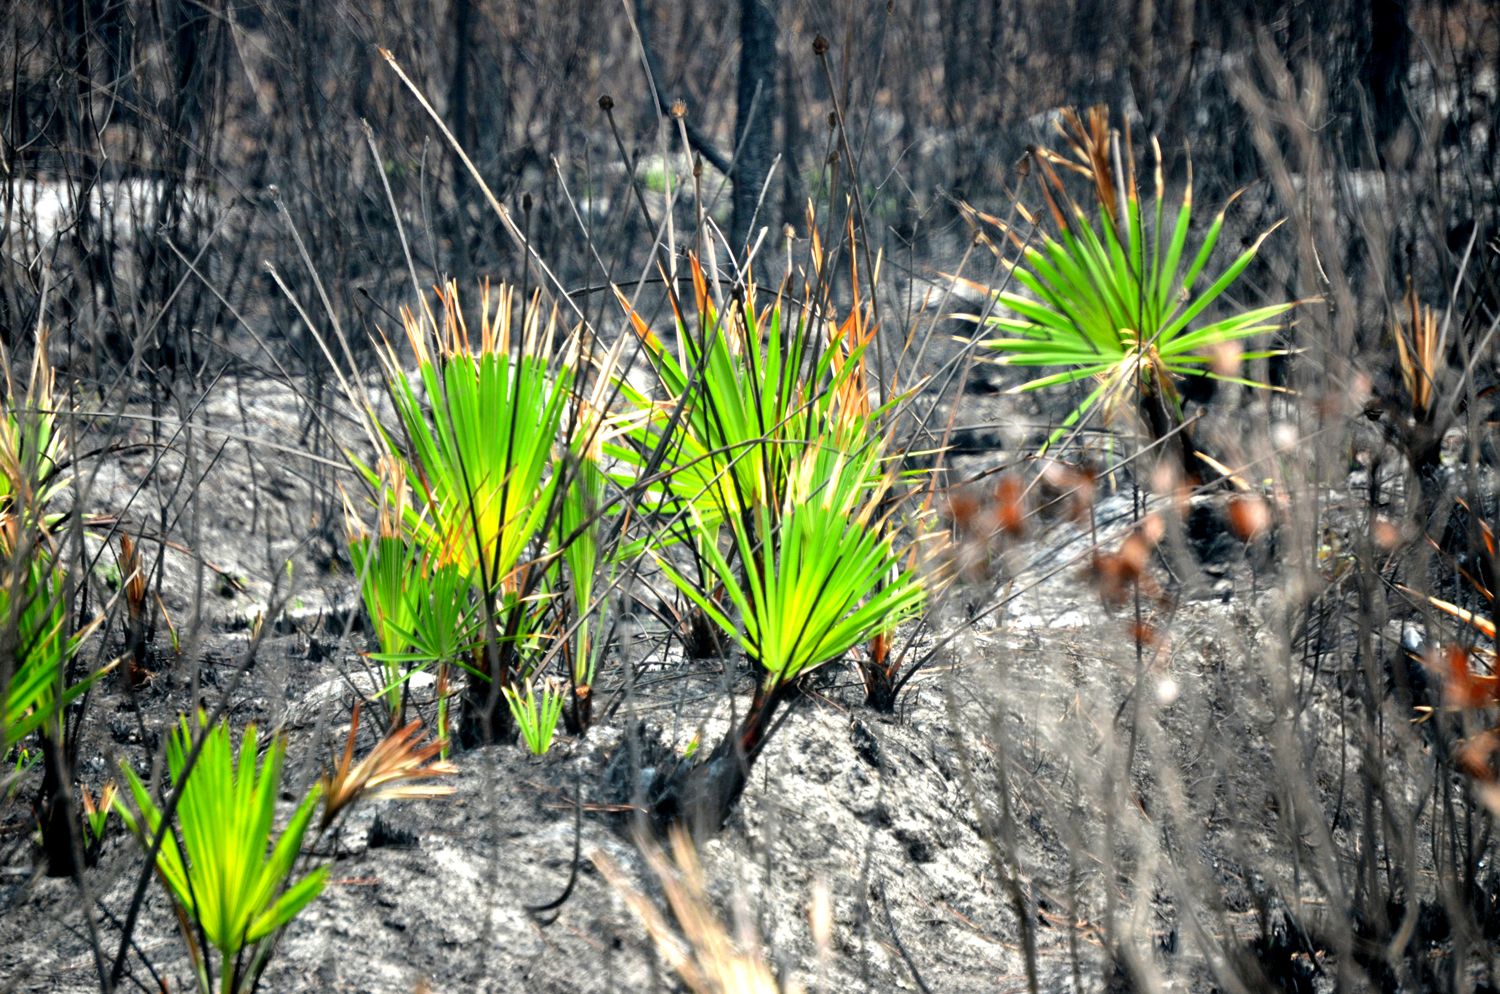 Even in the heart of the Espanola fire's charred remains, green life is burgeoning again. (© FlaglerLive)